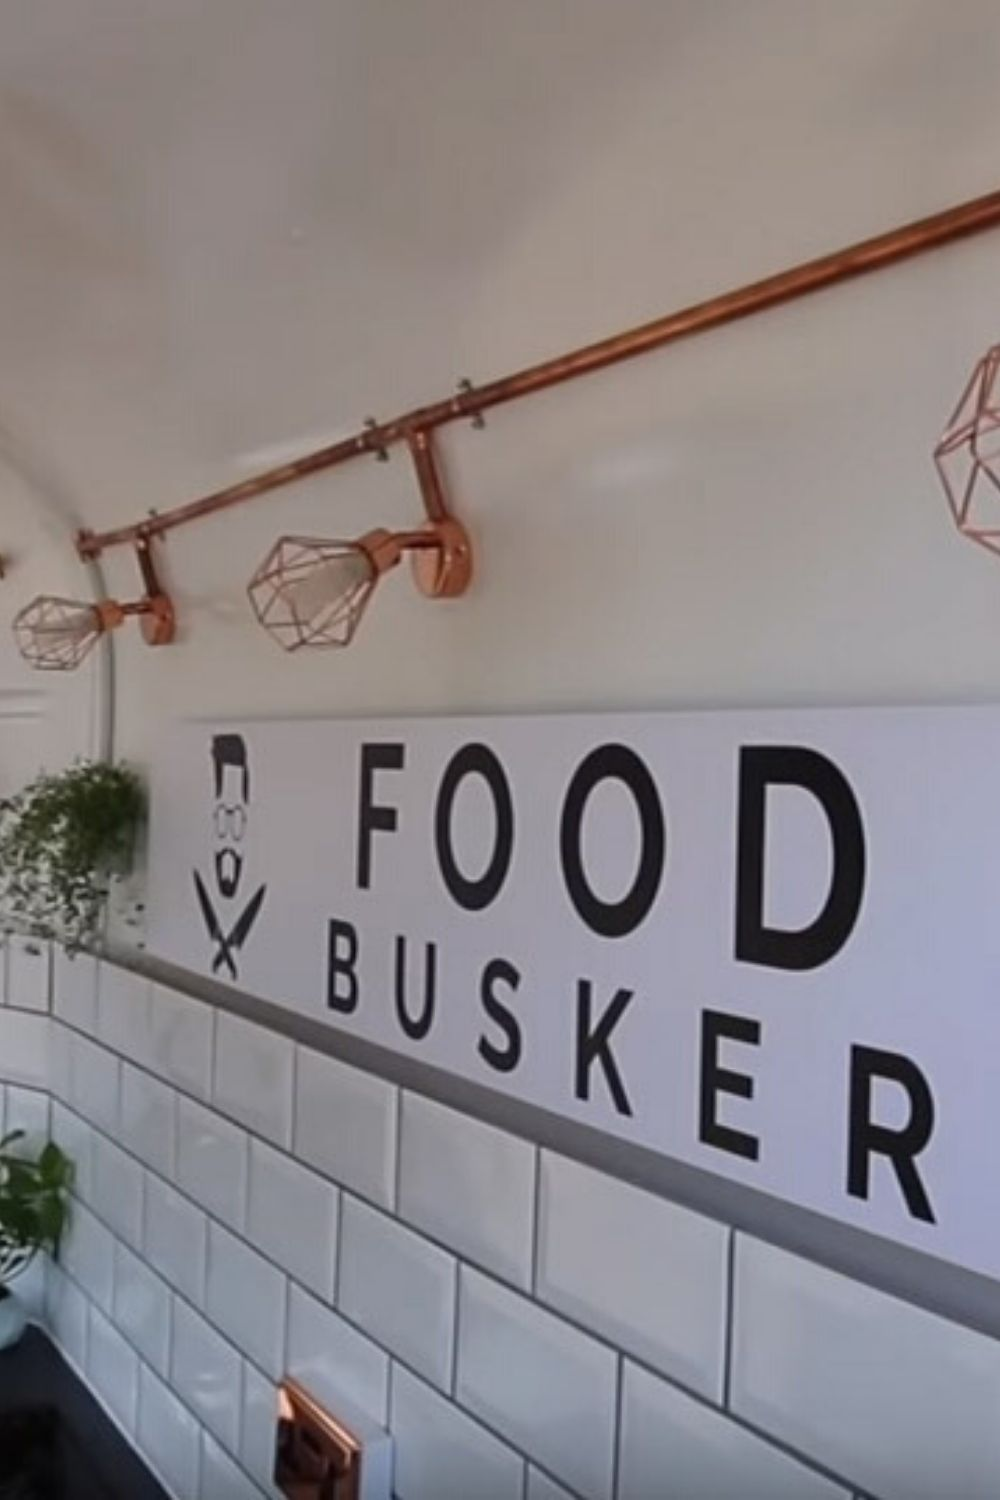 1000 x 1500 px_Food and drink_Food Busker vehicle conversion